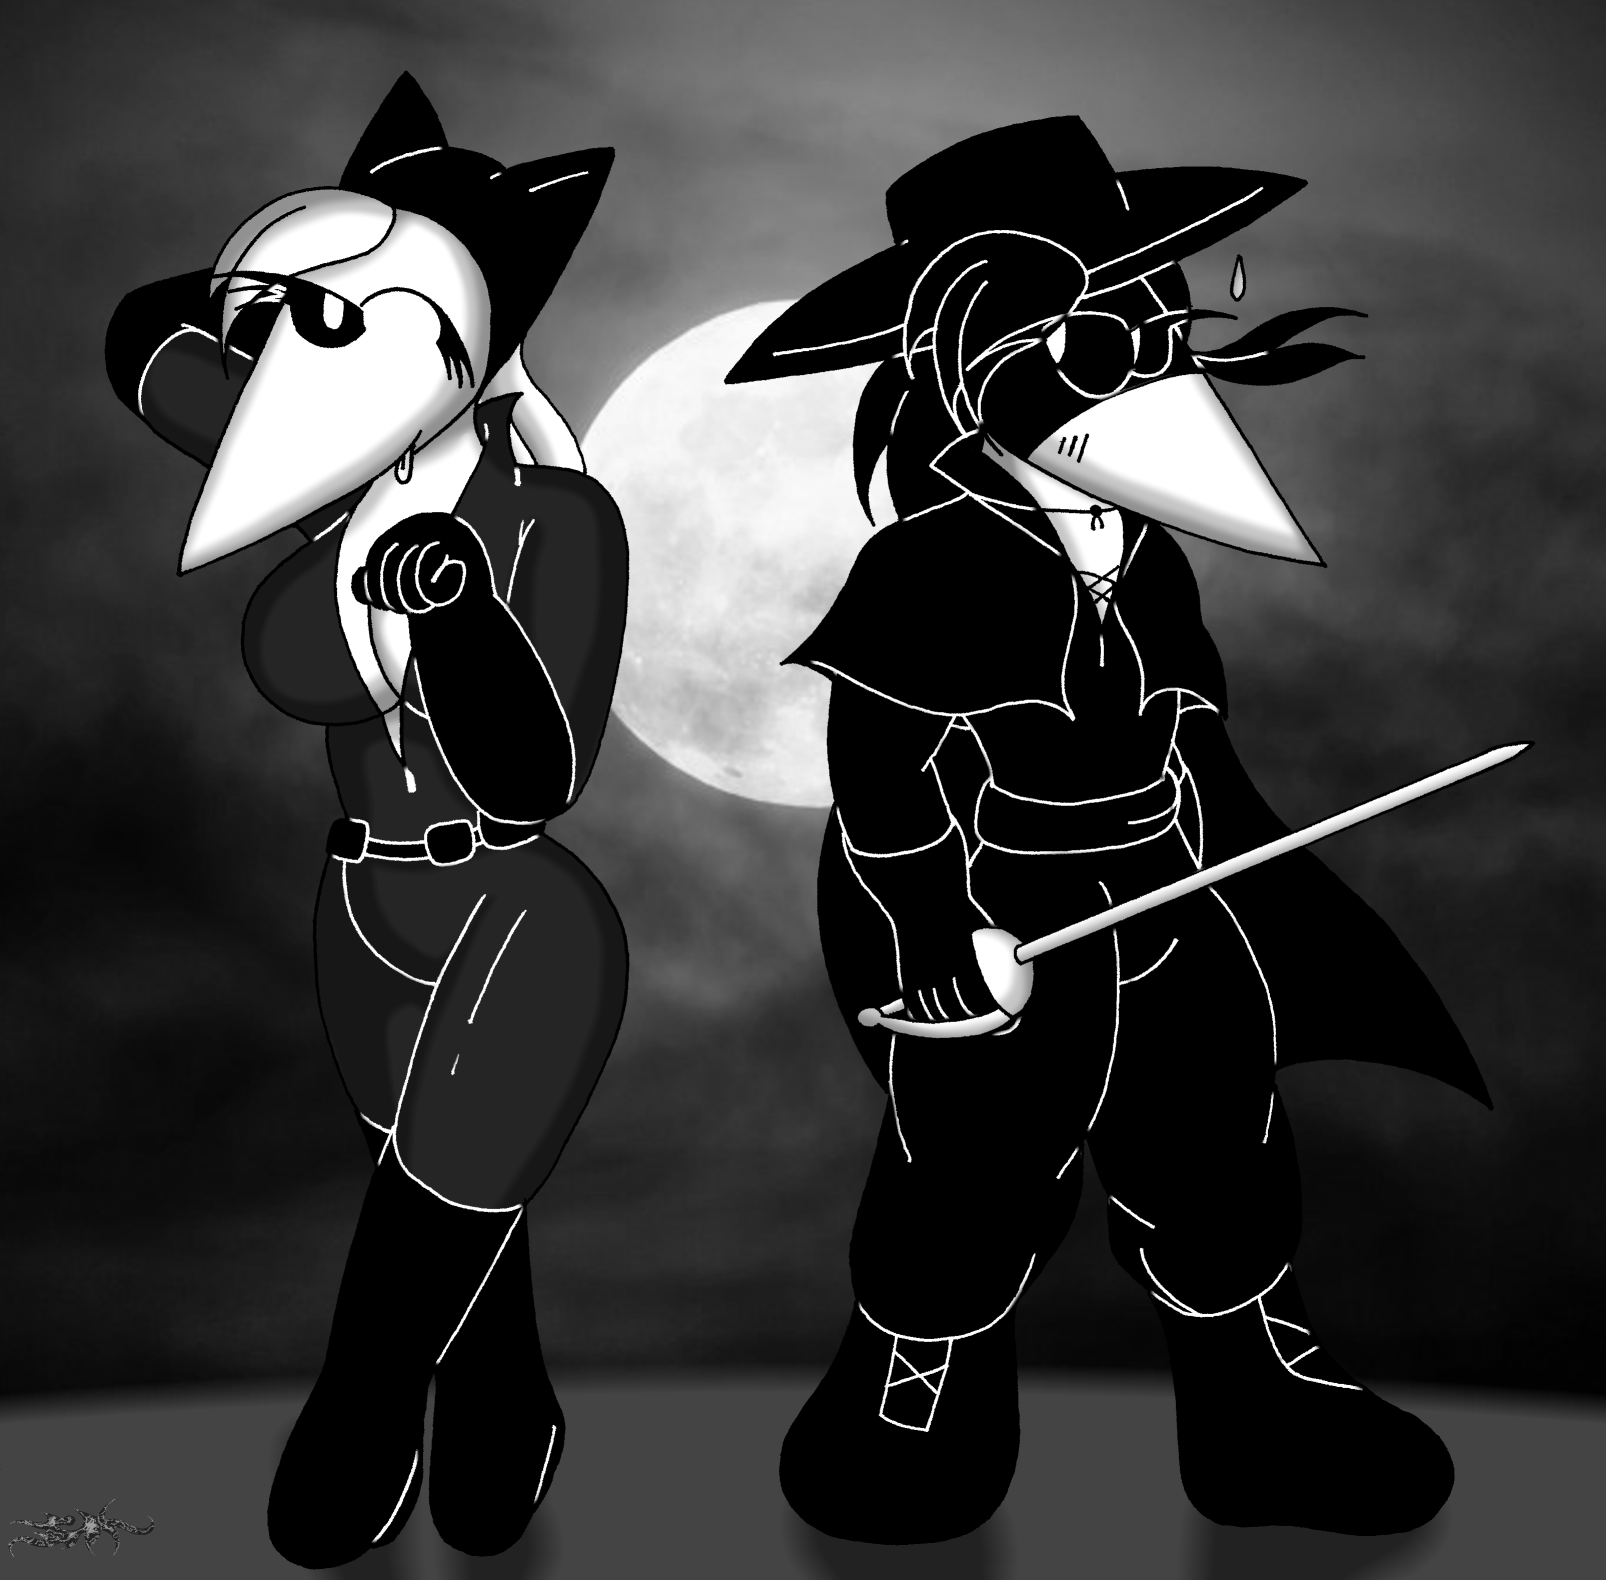 Spy Vs Spy - An epee against the naughty cat